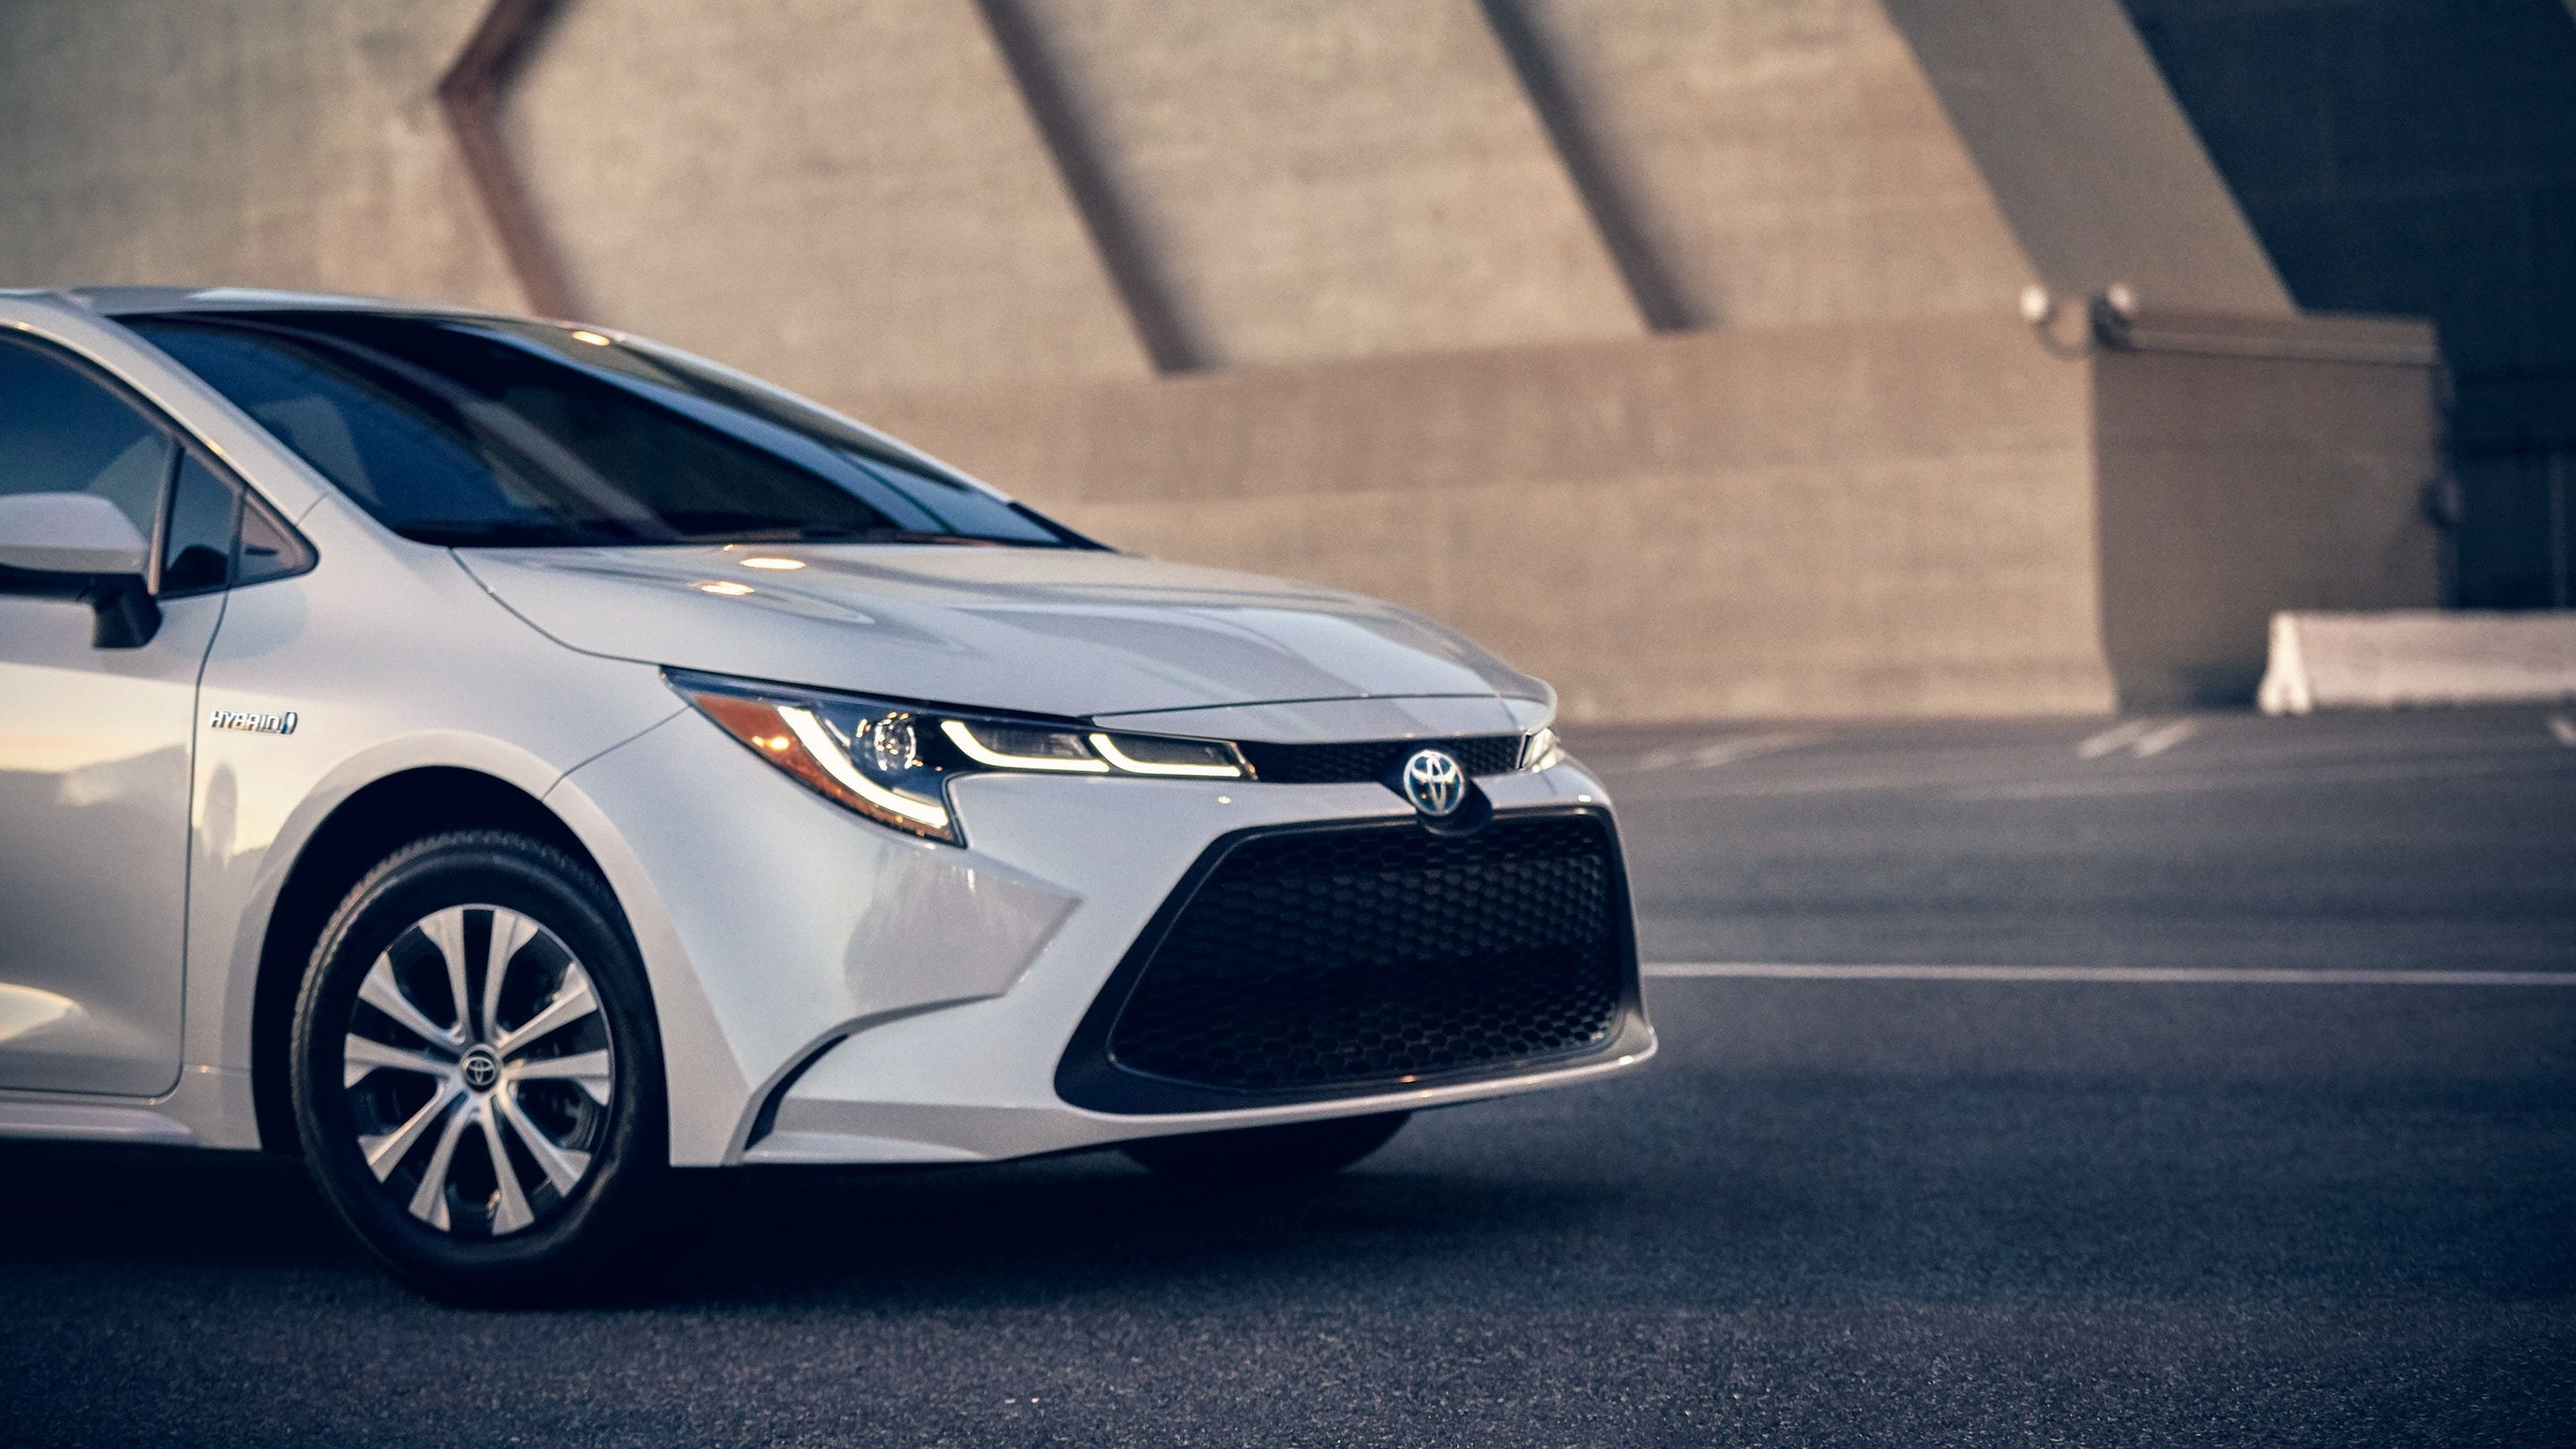 2020 Toyota Corolla Exterior Photos Latest Information About Toyota Cars Release Date Redesign And Rumors Our Coverage A Toyota Corolla Toyota New Car Smell